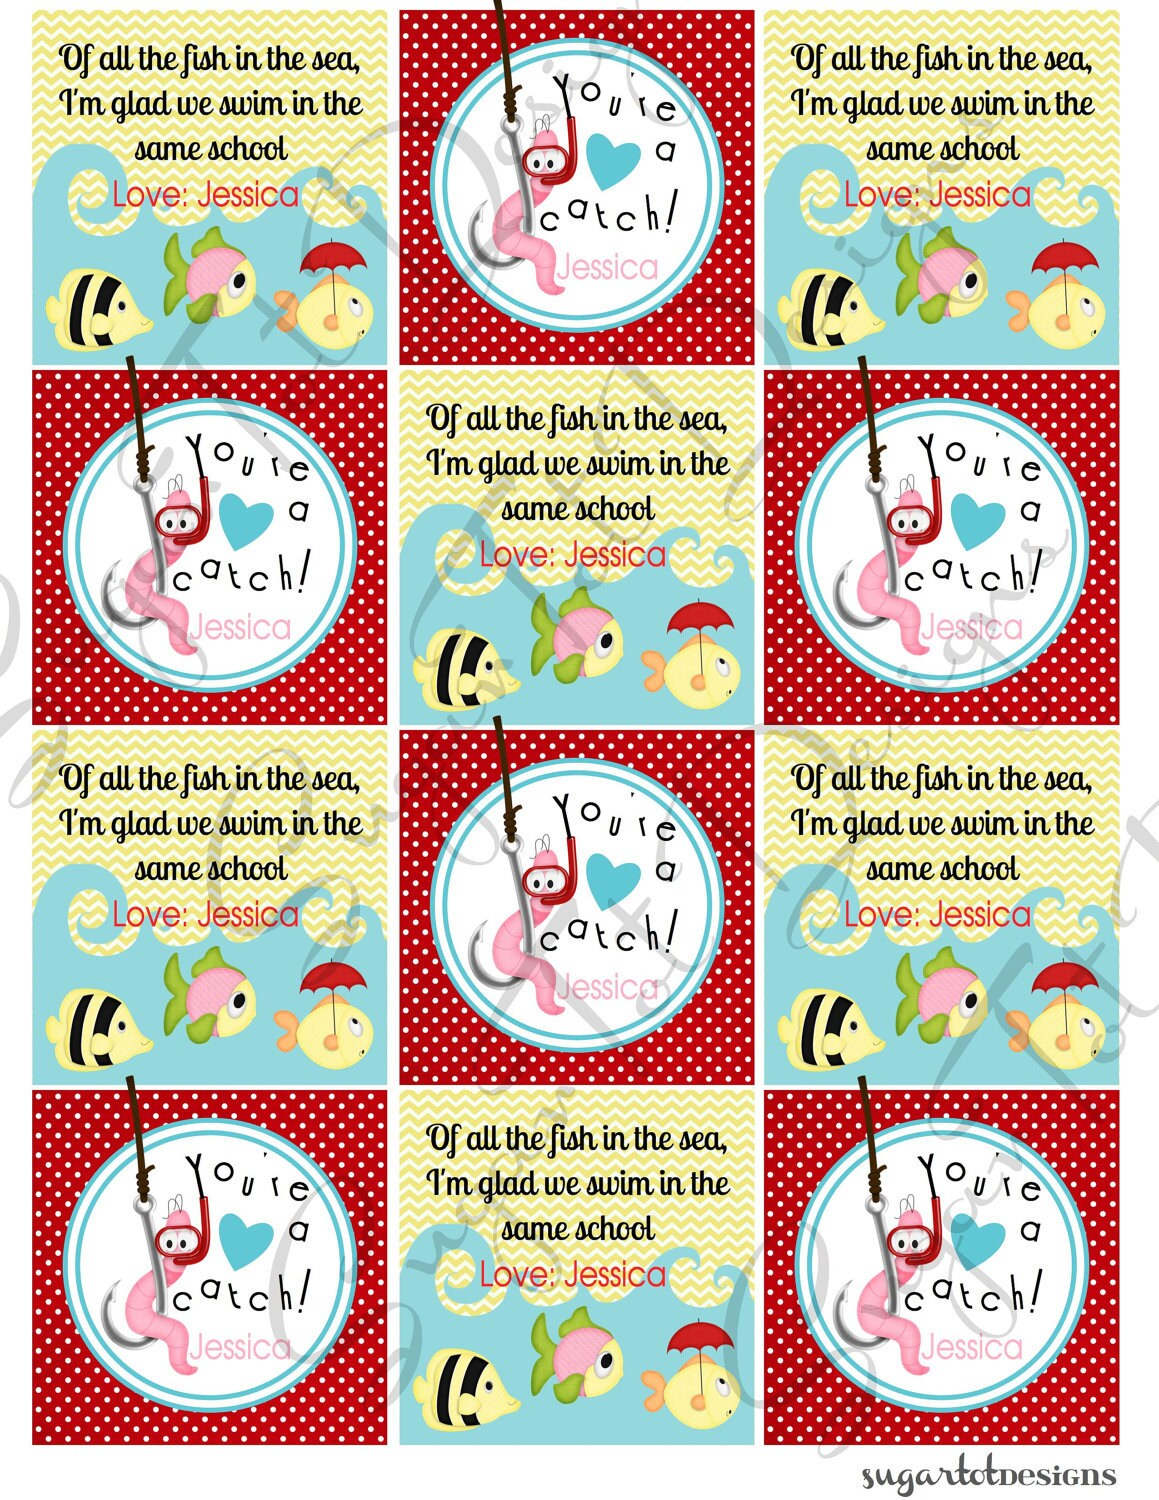 You're a Catch Valentine's Day Card Of All the by SugarTotDesigns